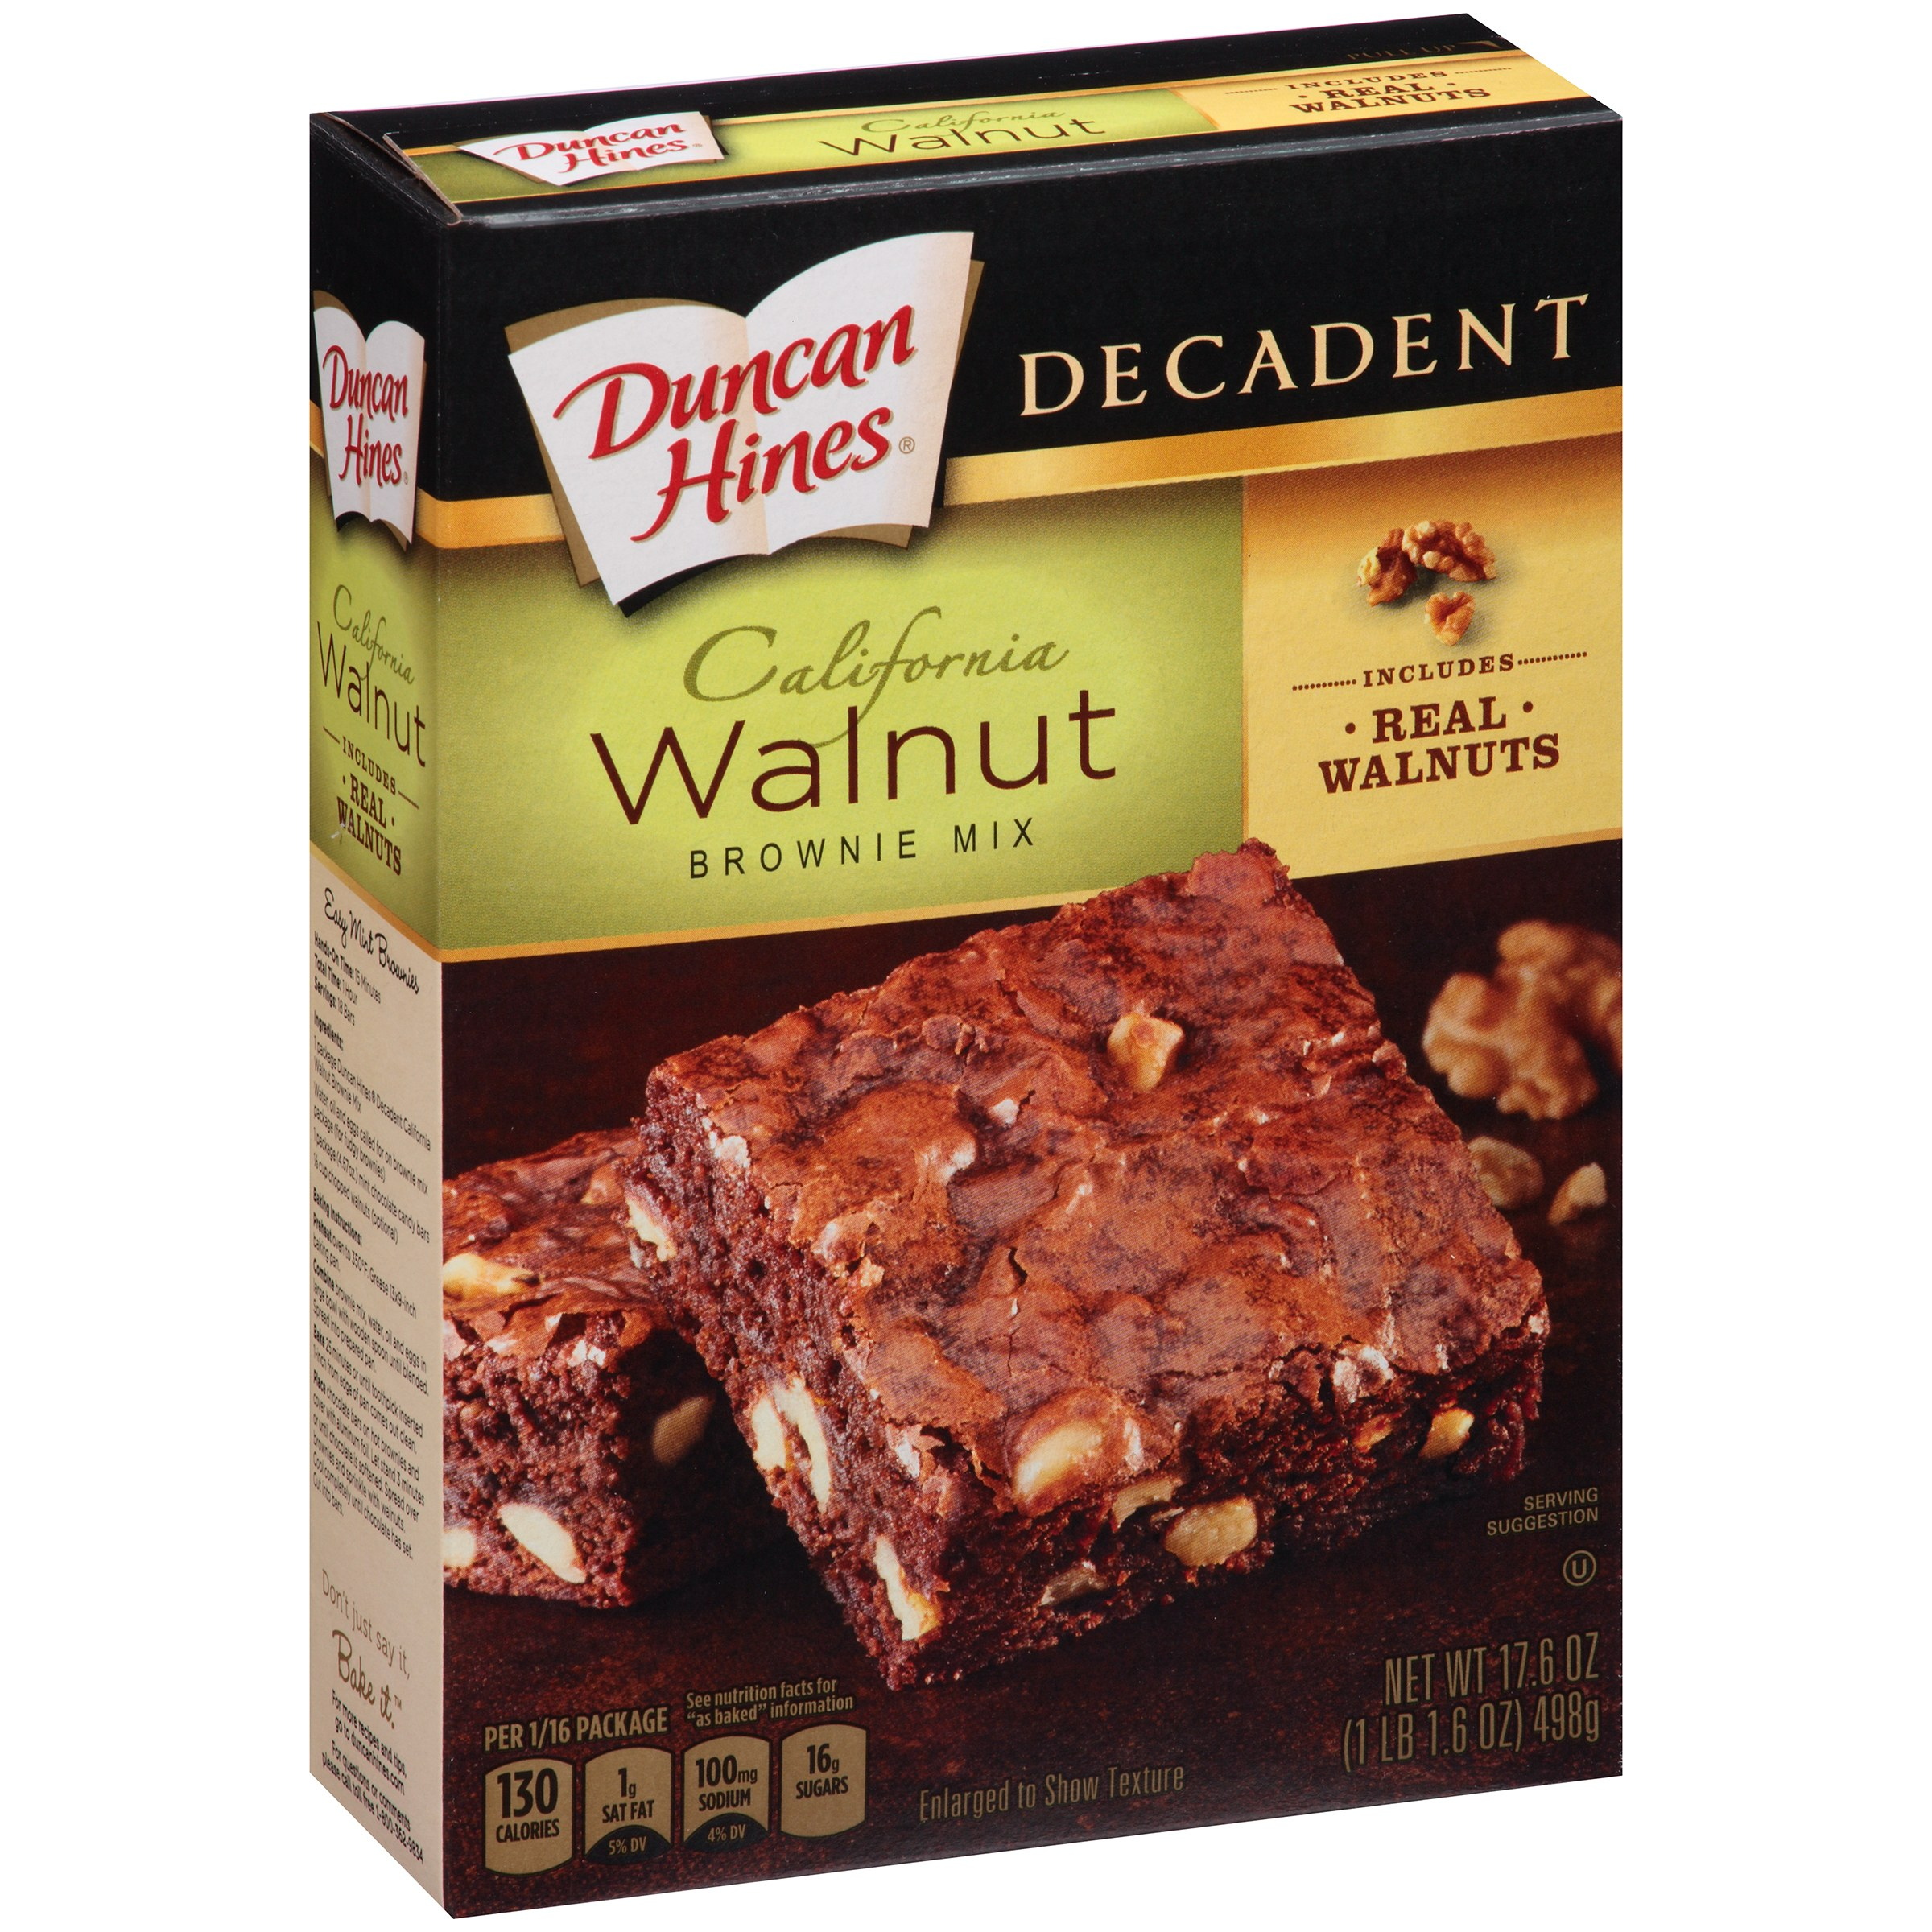 Duncan Hines Chocolate Lover's Walnut Brownies, 17.60 oz by Pinnacle Group LLC